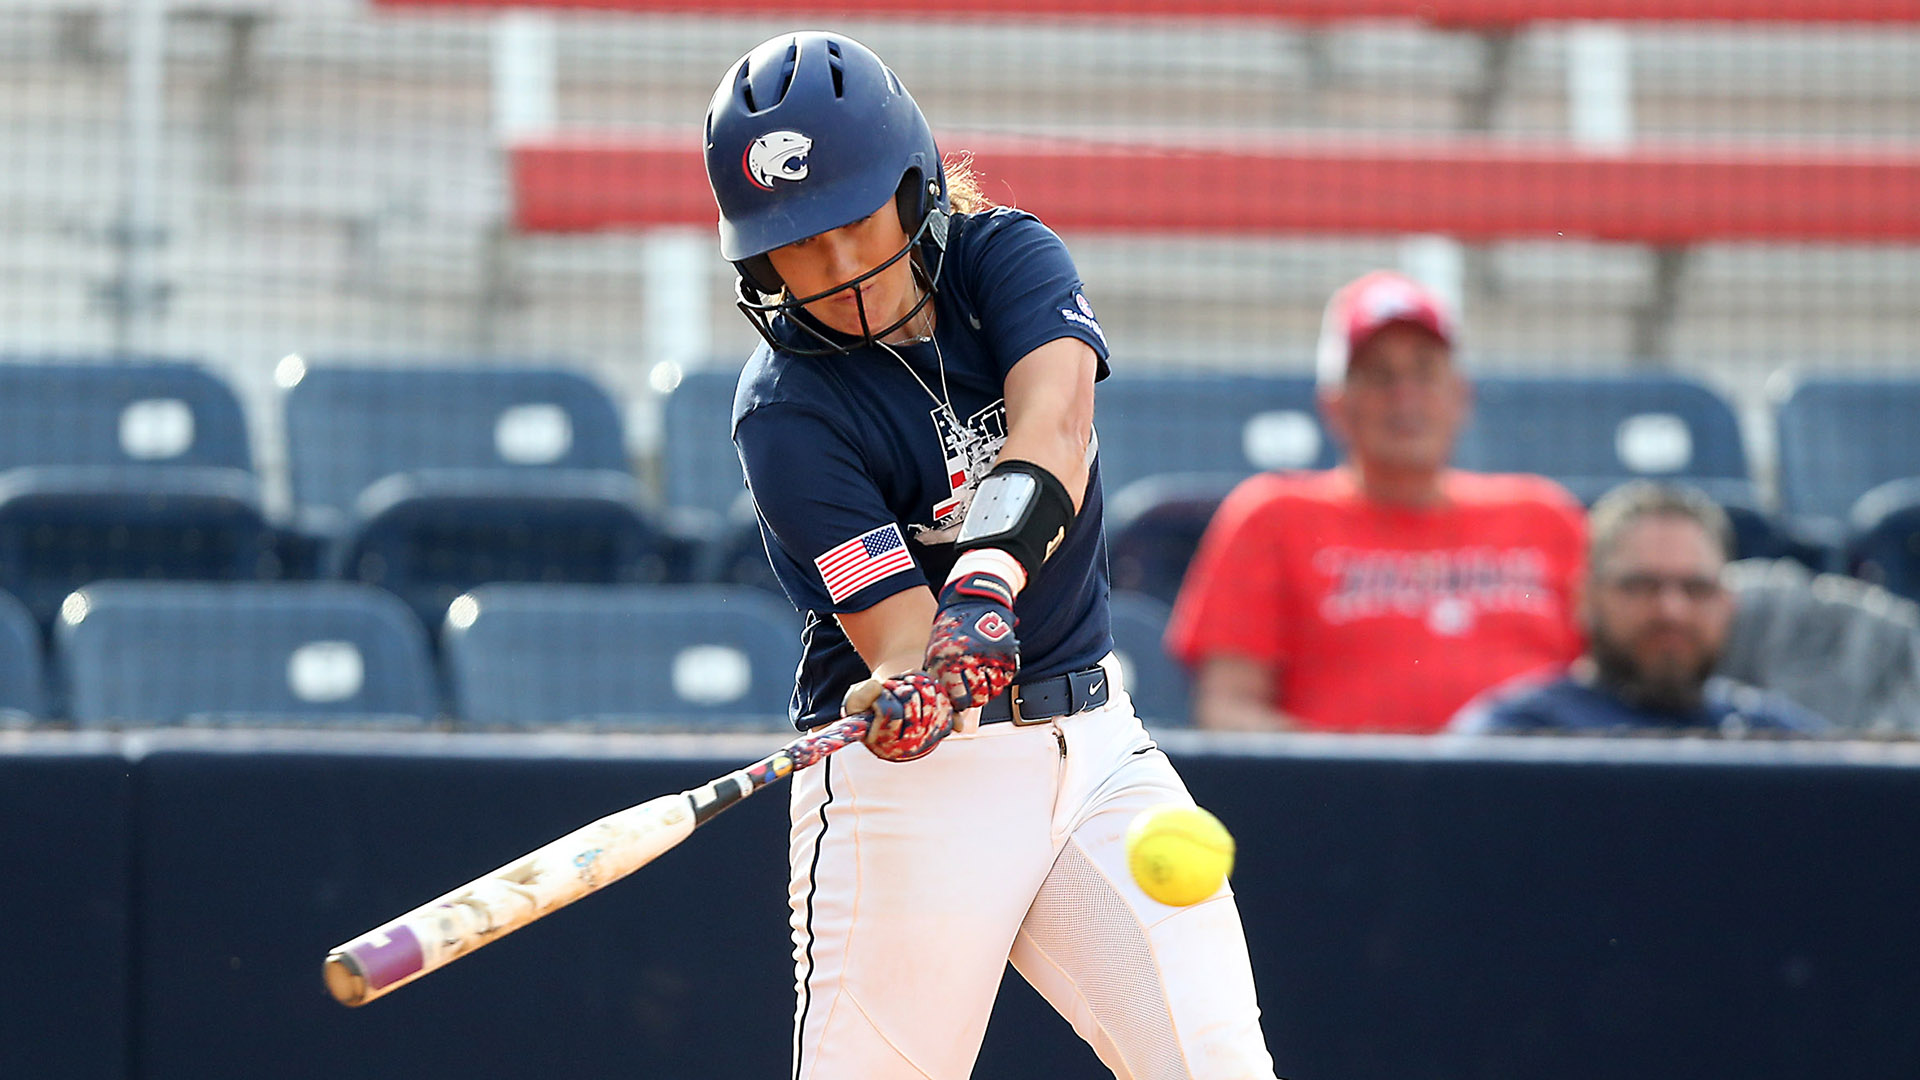 South Alabama Softball Heads Out For Midweek League Game At Troy